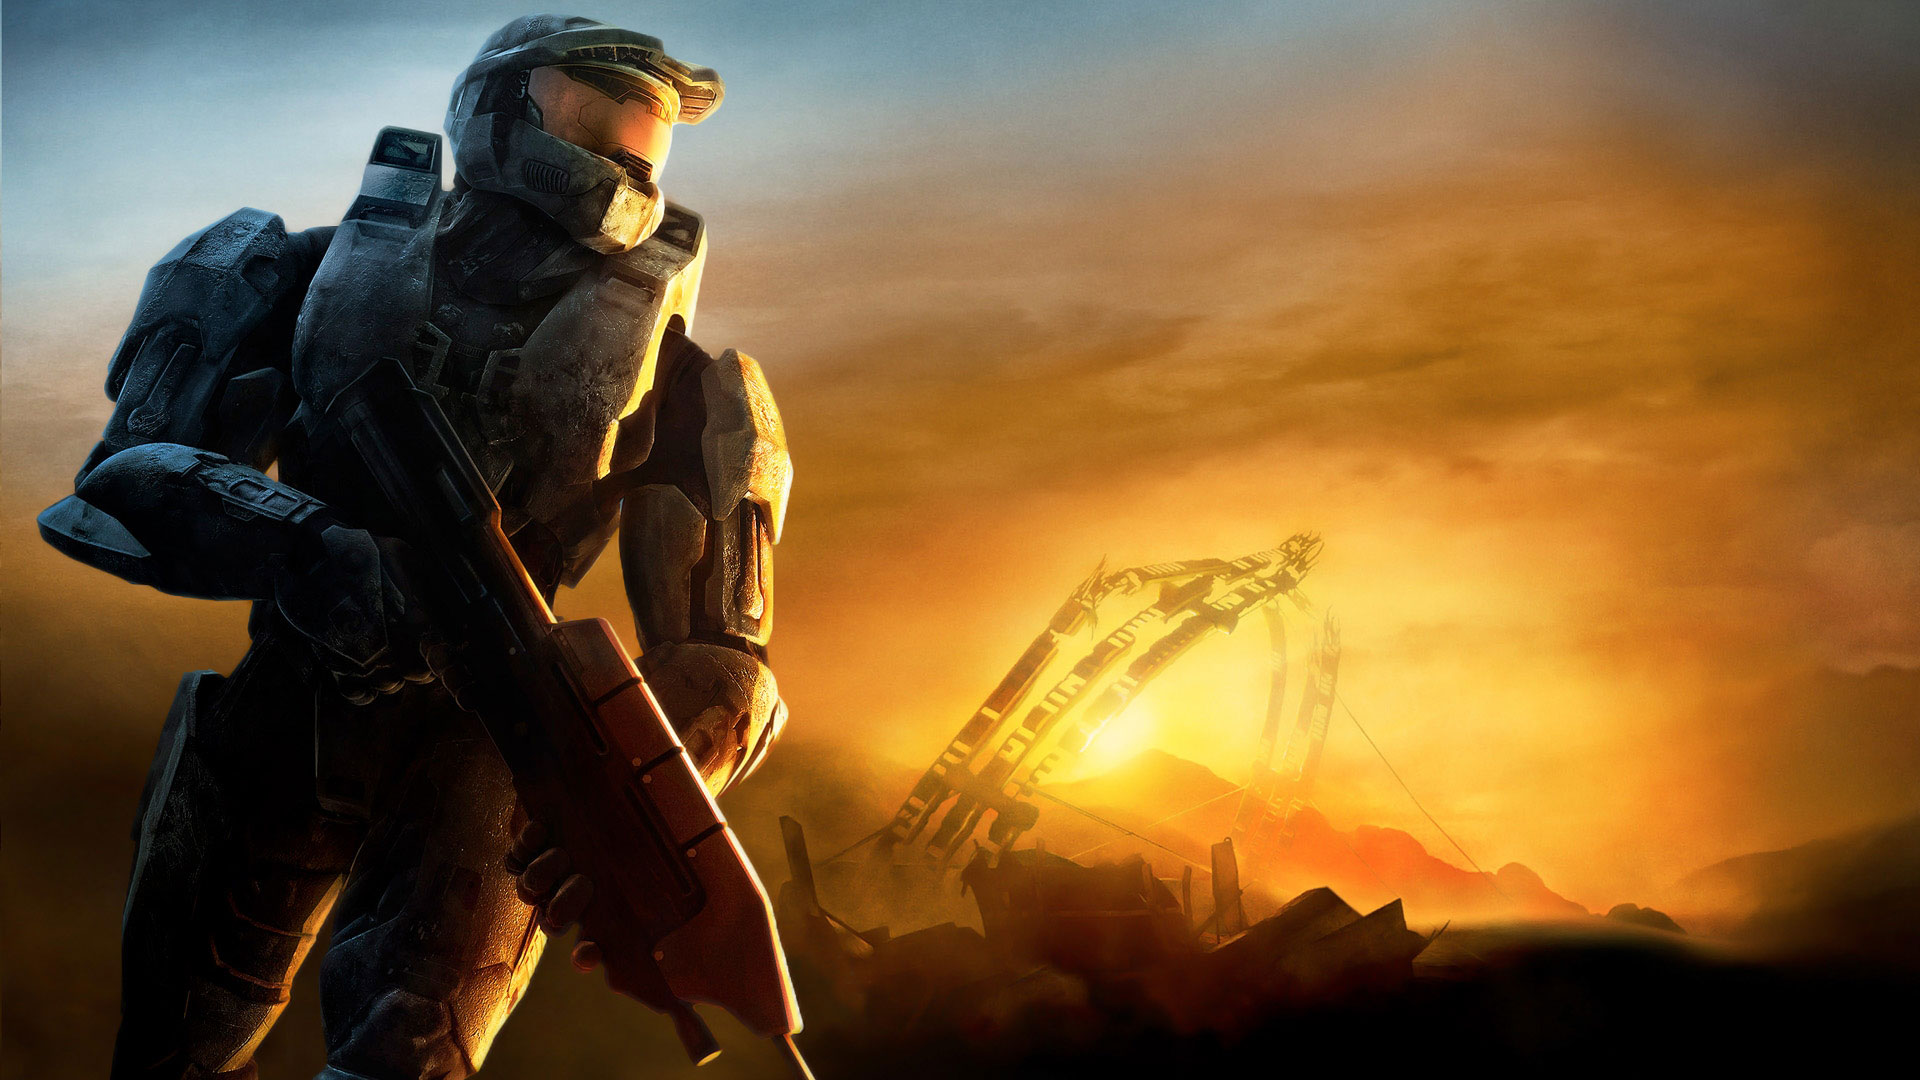 Halo Hd Wallpaper Id 1920x1080